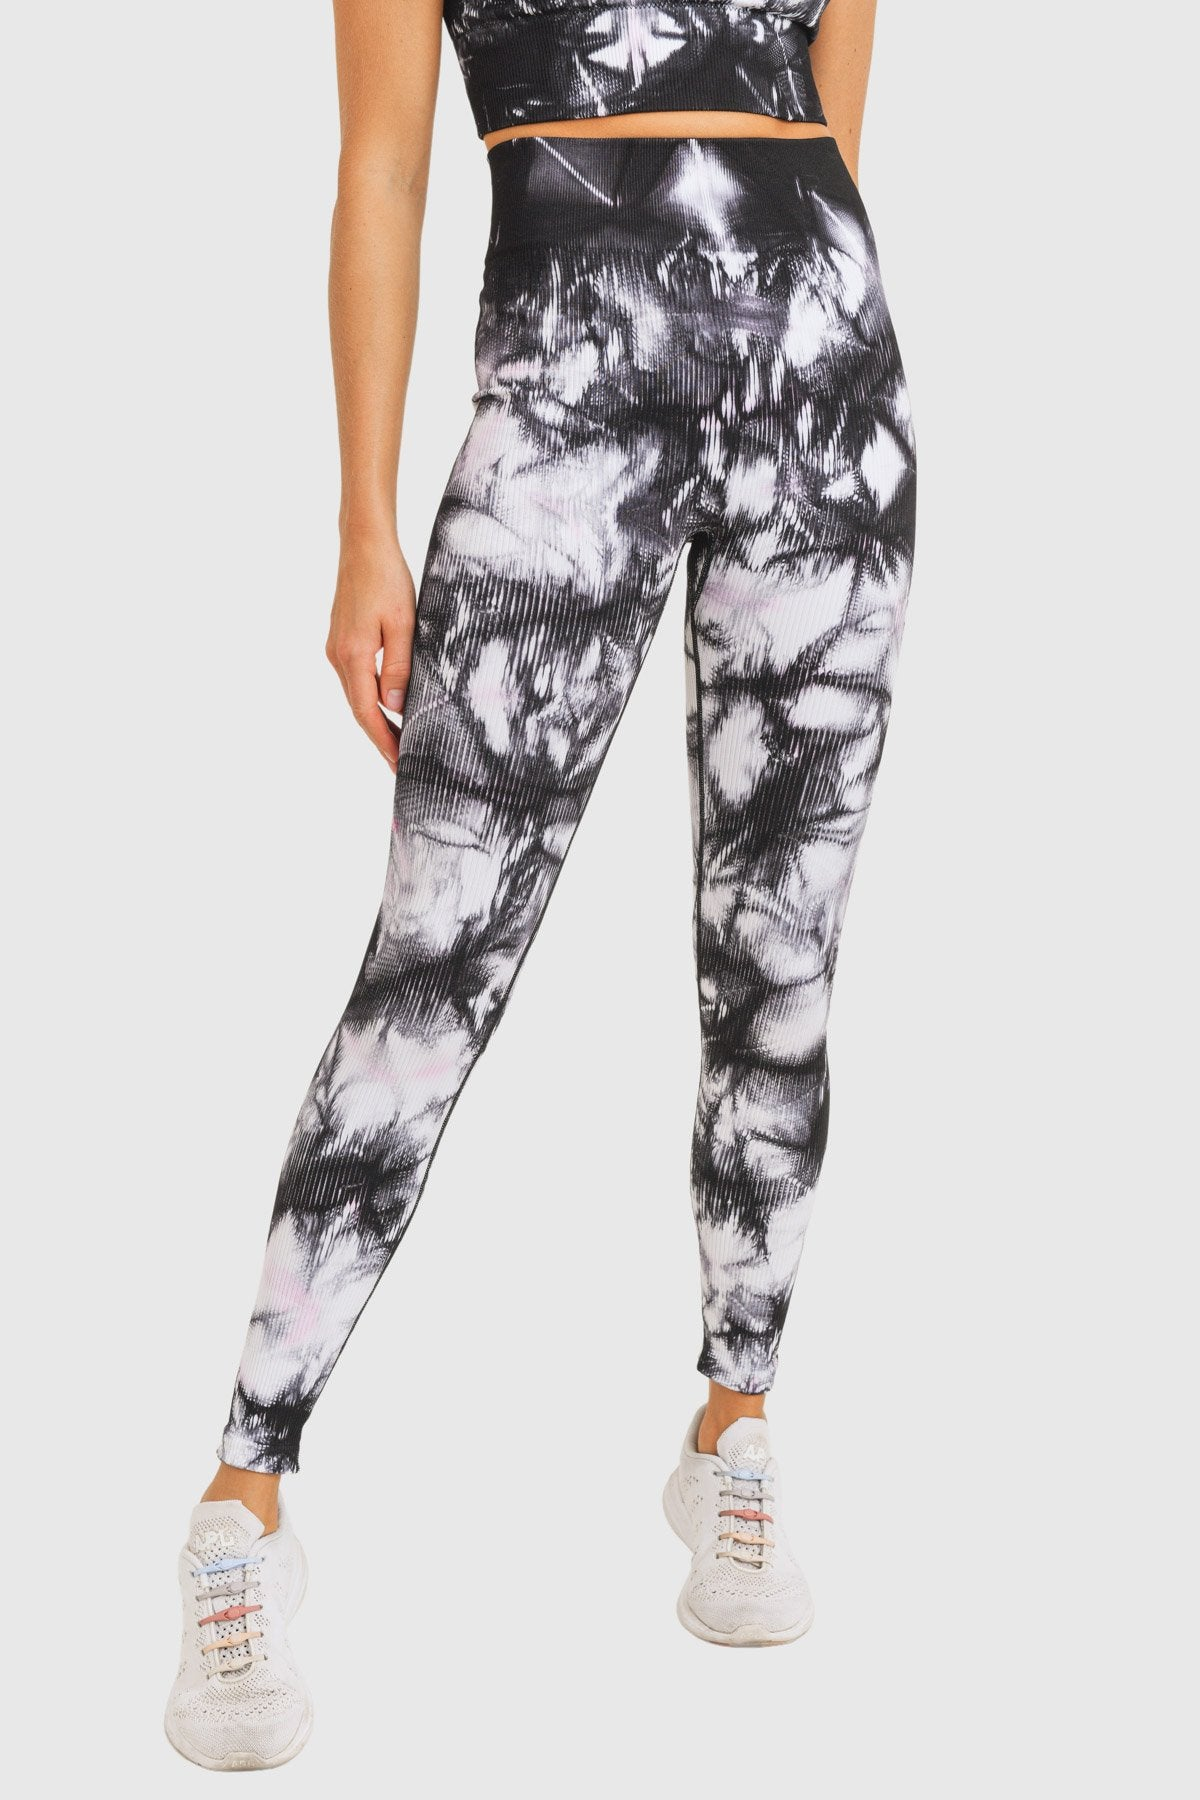 Smokescreen Tie-Dye Ribbed Seamless Highwaist Leggings